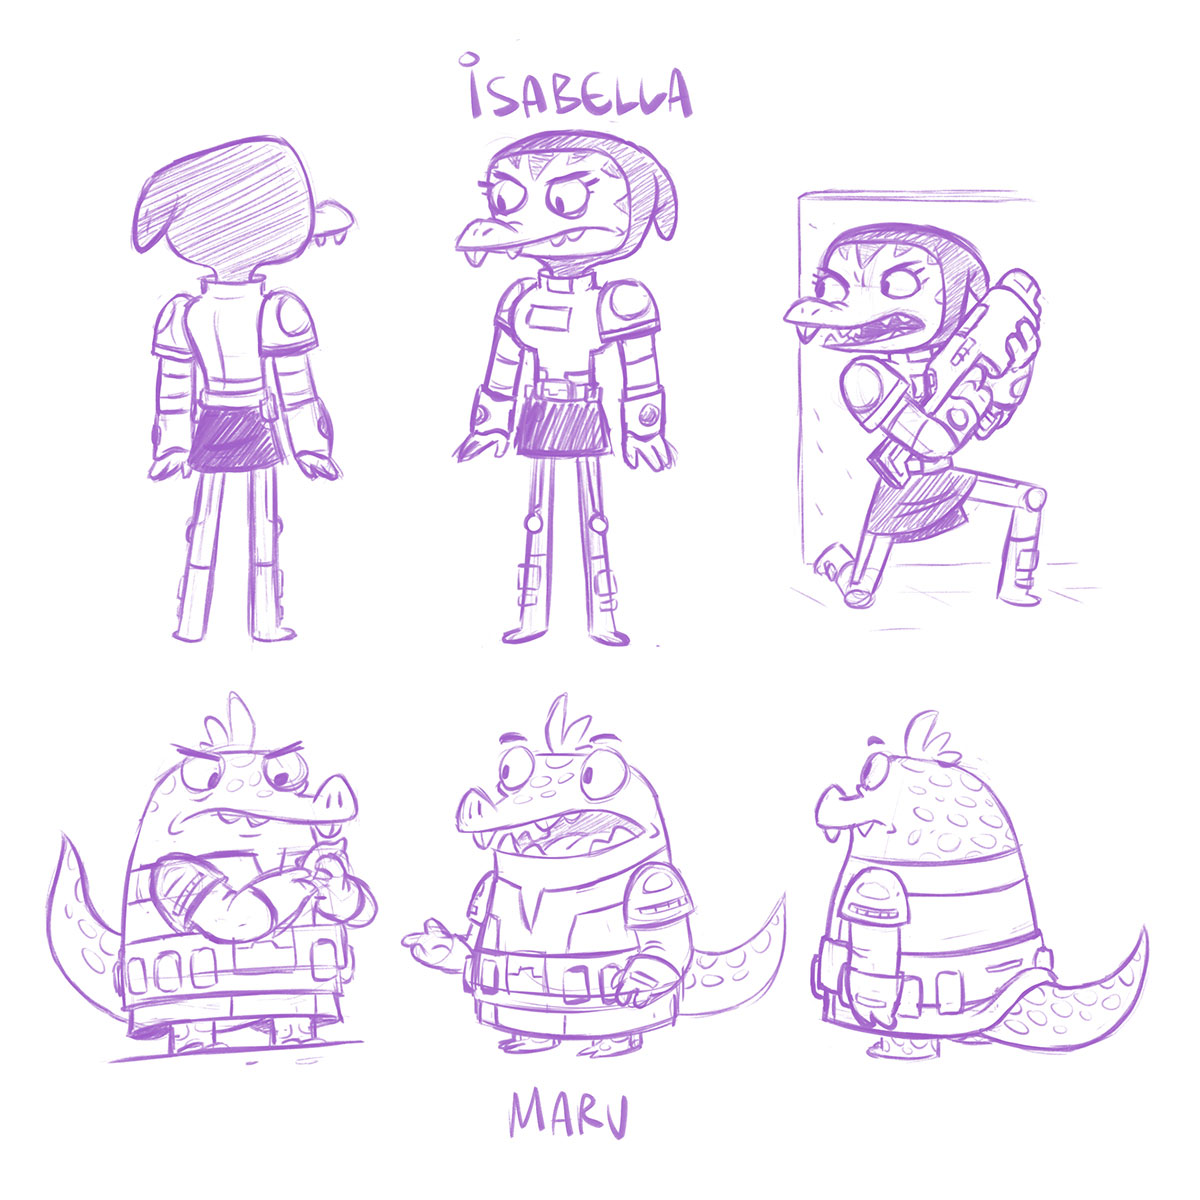 Marv-and-Isabella---Sketches01.jpg